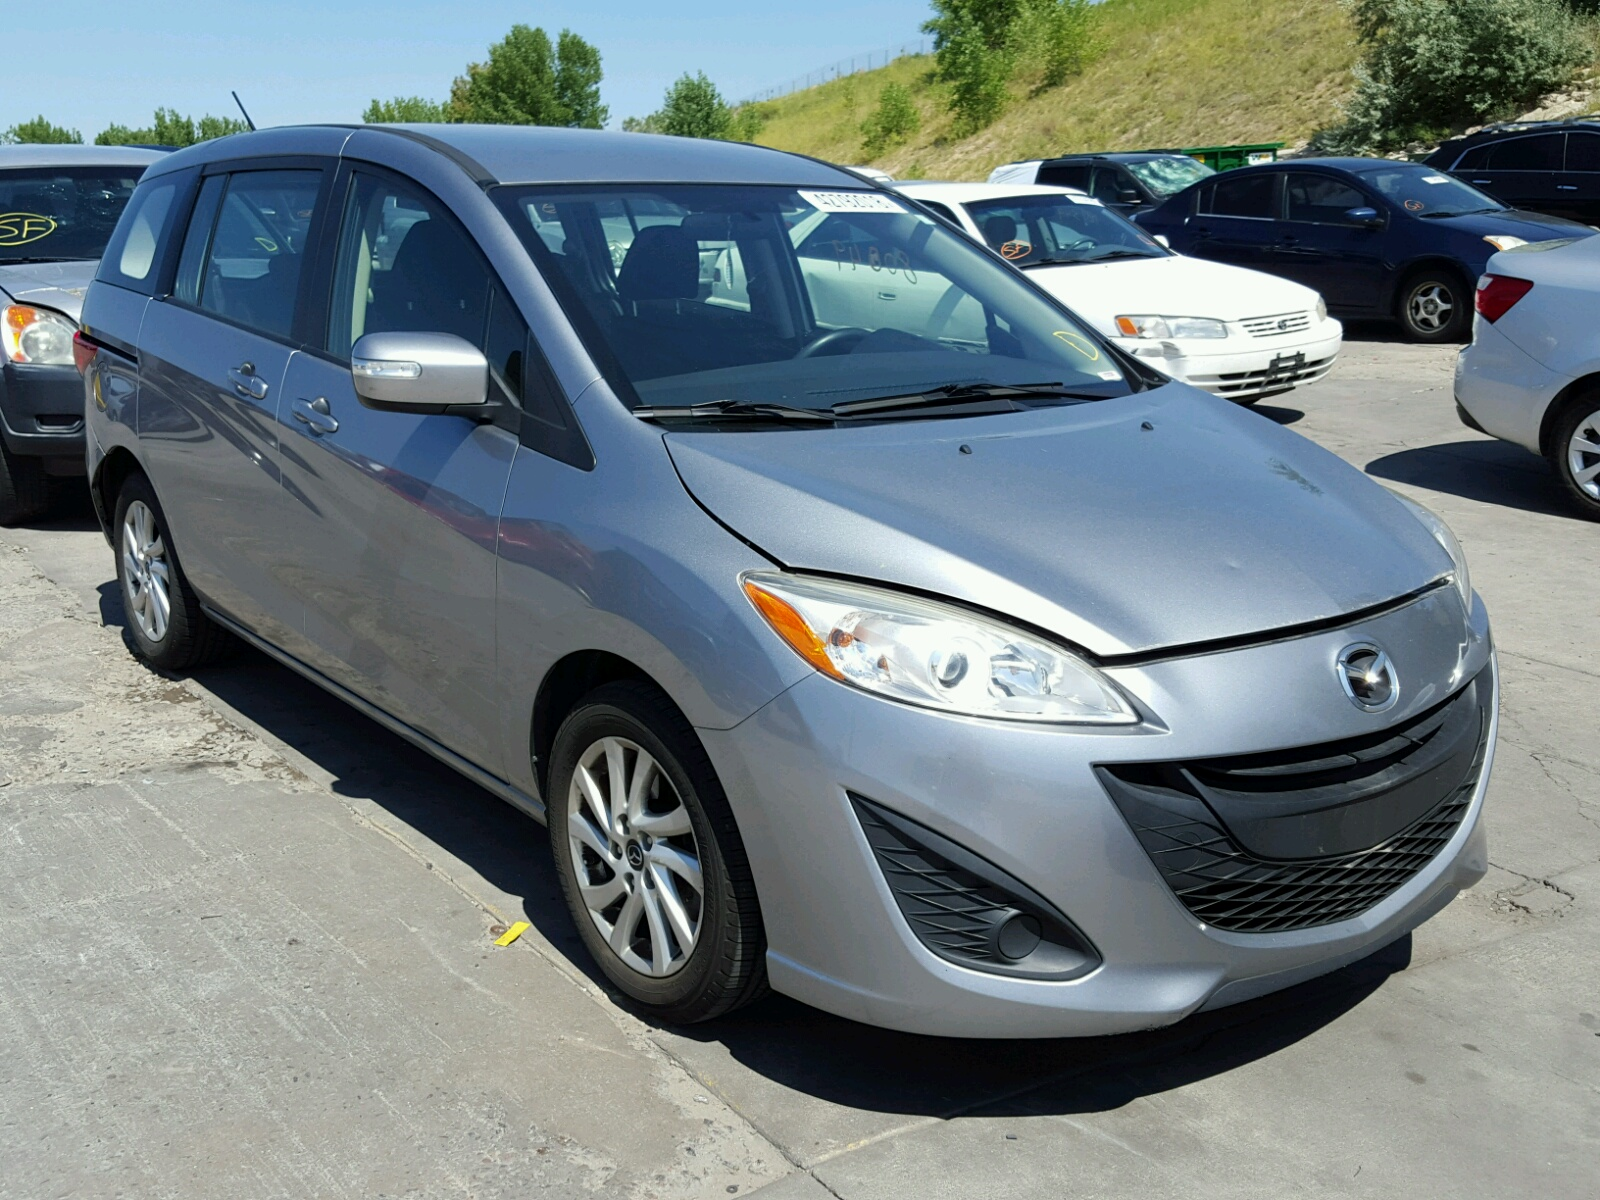 Salvage 2014 Mazda 5 SPORT for sale